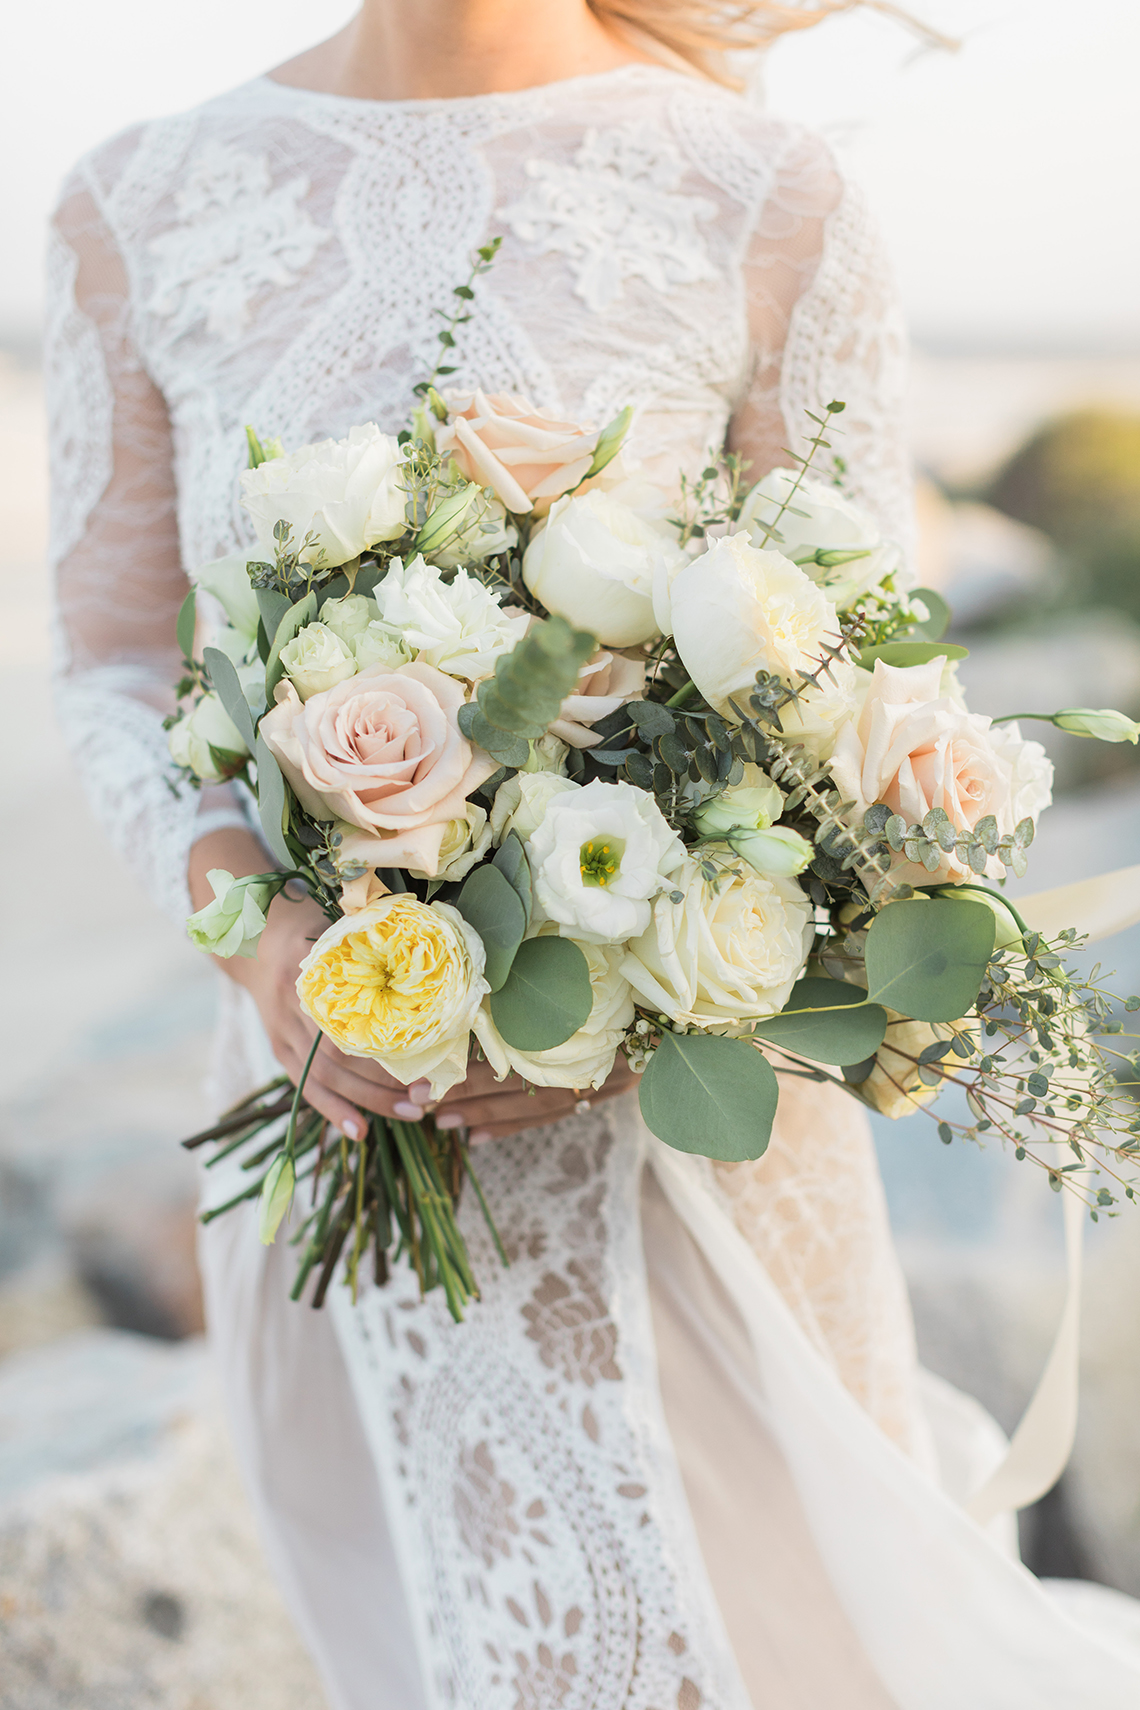 Intimate Southern Boho Beach Wedding in Charleston – Ava Moore Photography 51